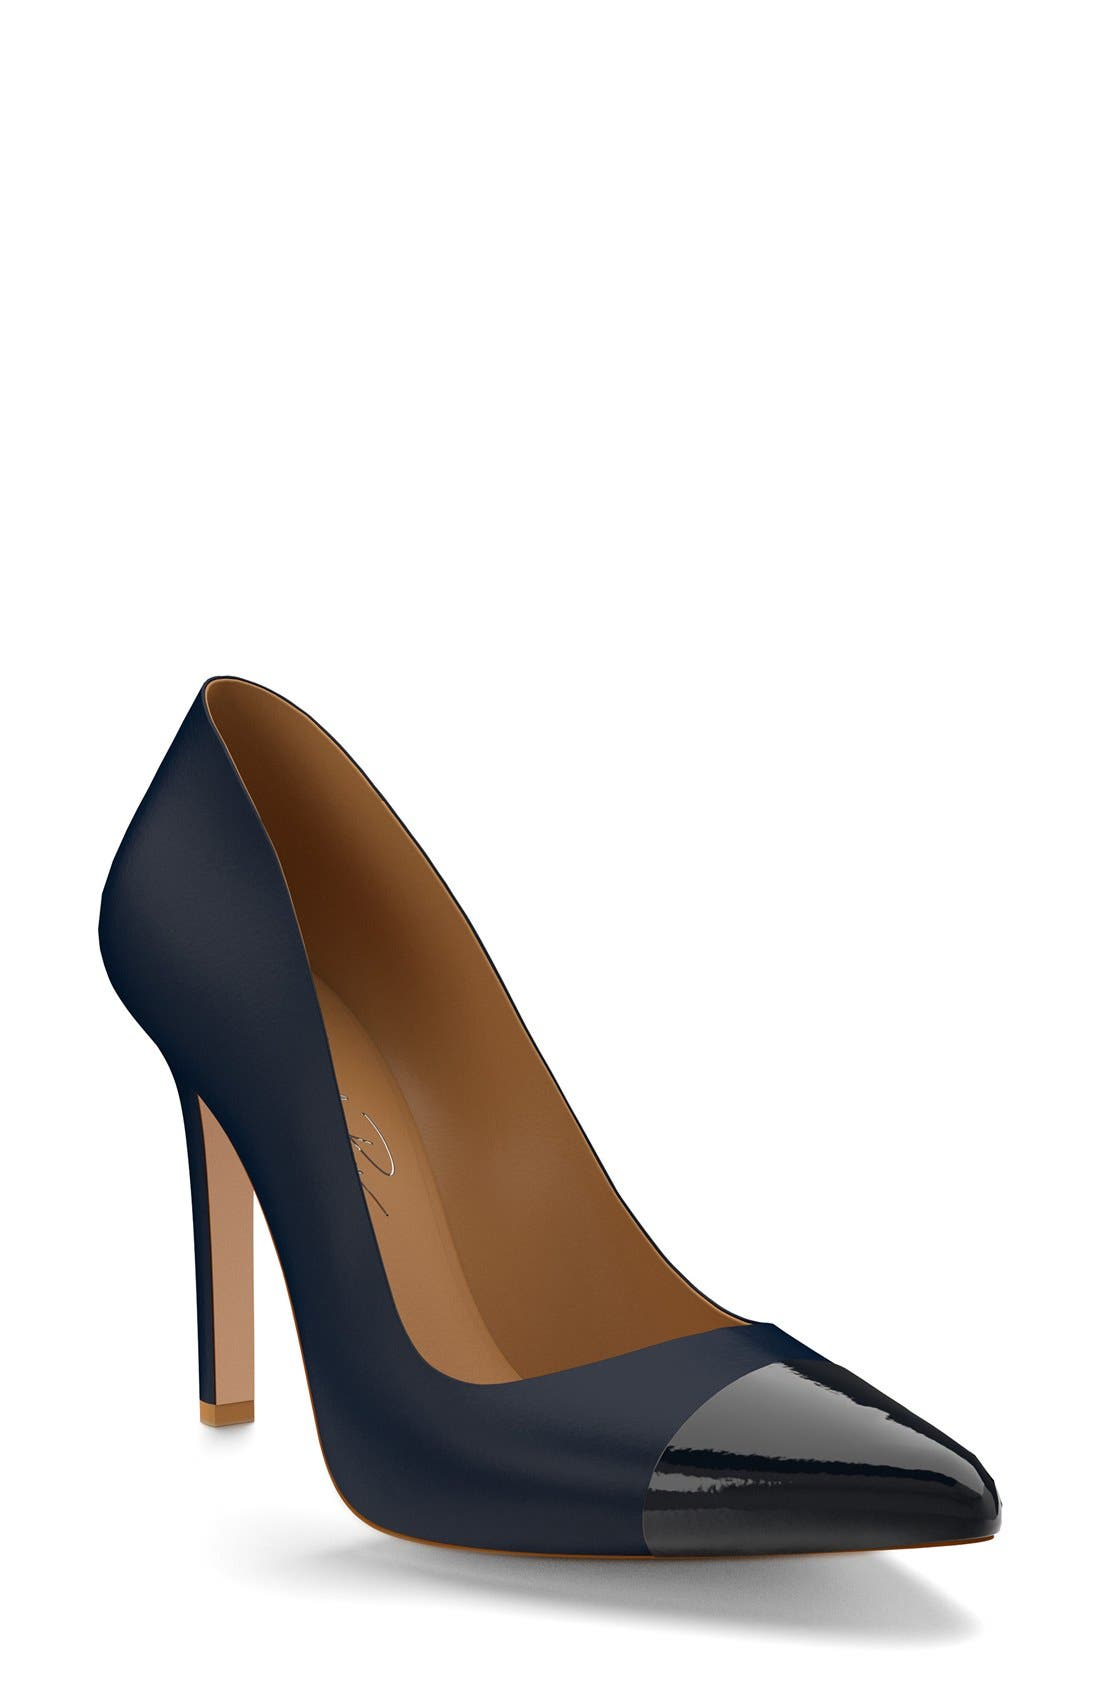 Shoes of Prey Cap Toe Pump (Women)